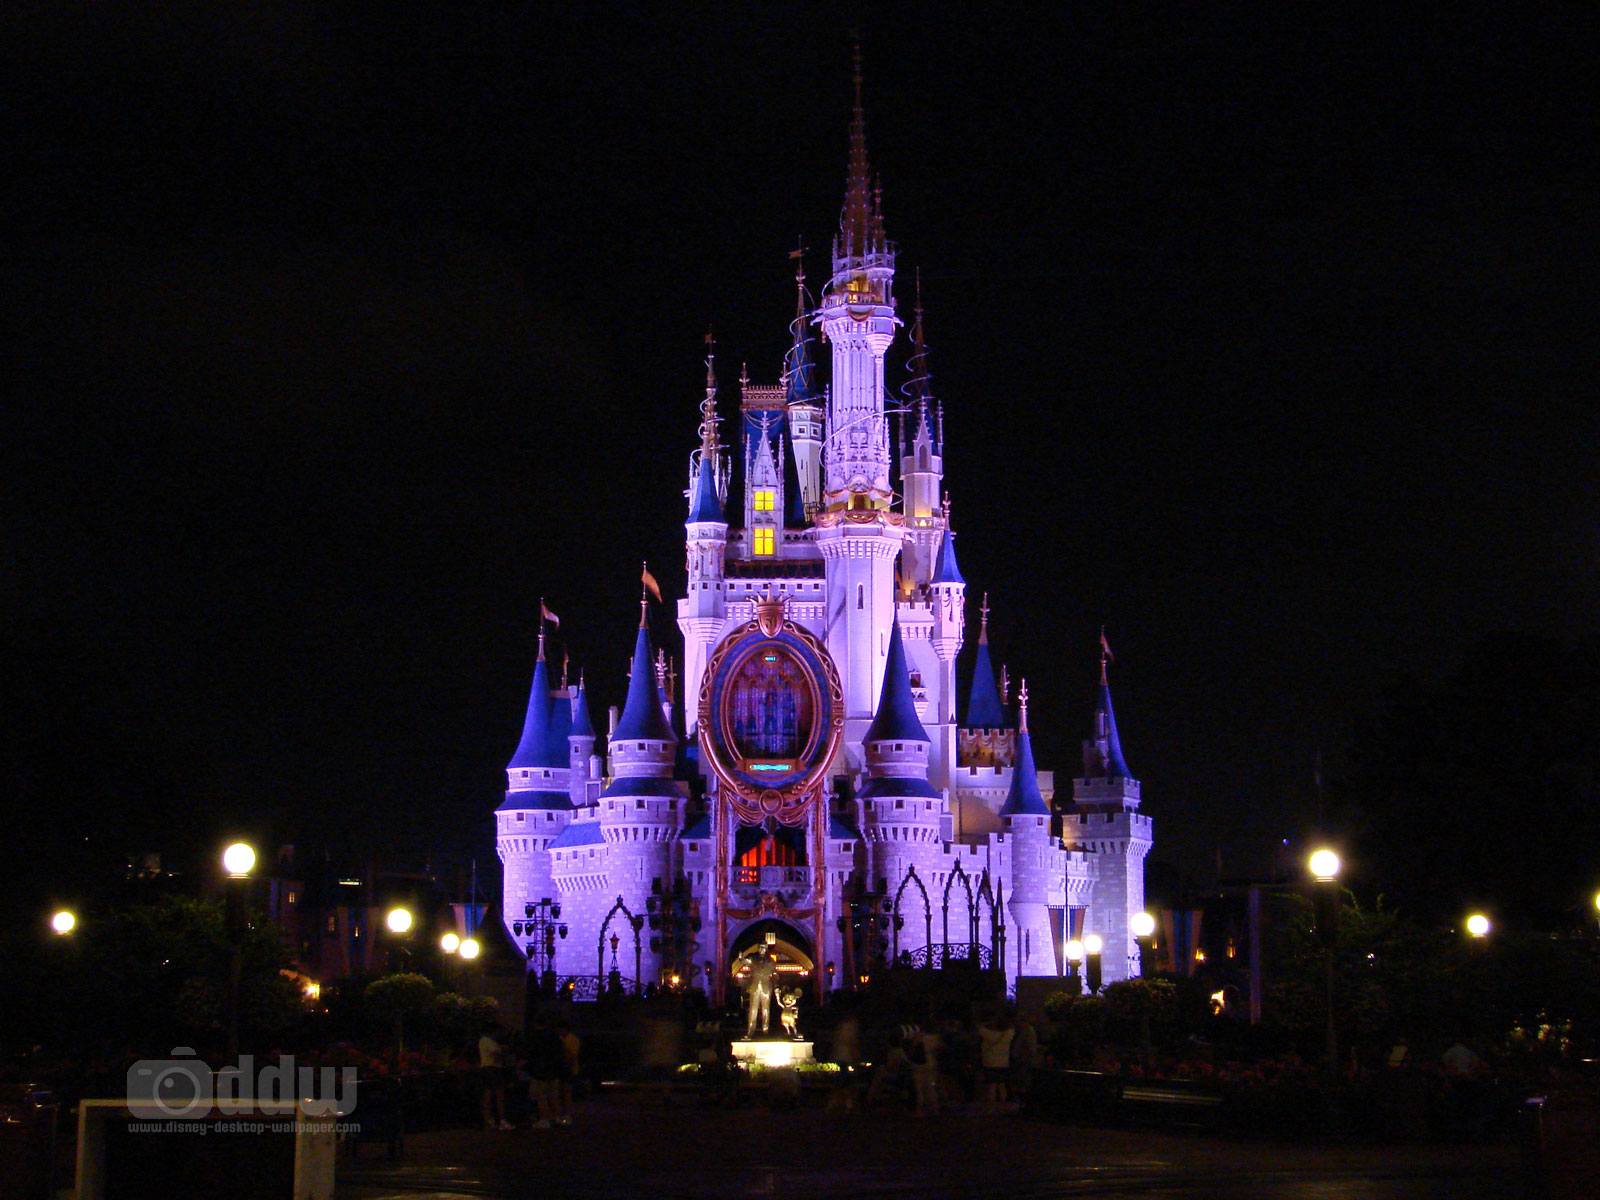 Cinderella Castle Desktop Wallpaper 1600 x 1200 1600x1200